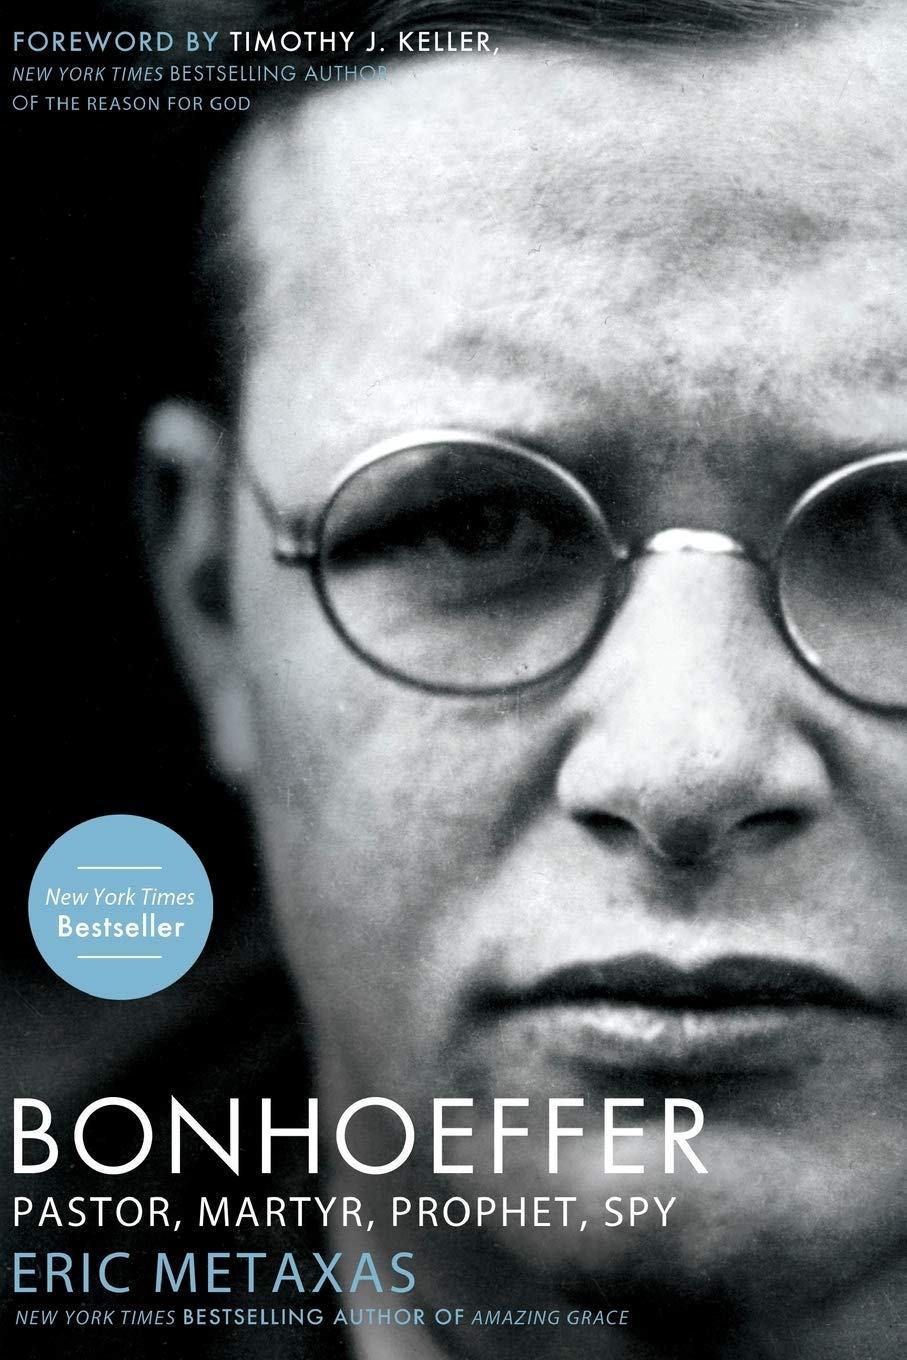 Amazon.com: Bonhoeffer: Pastor, Martyr, Prophet, Spy ...